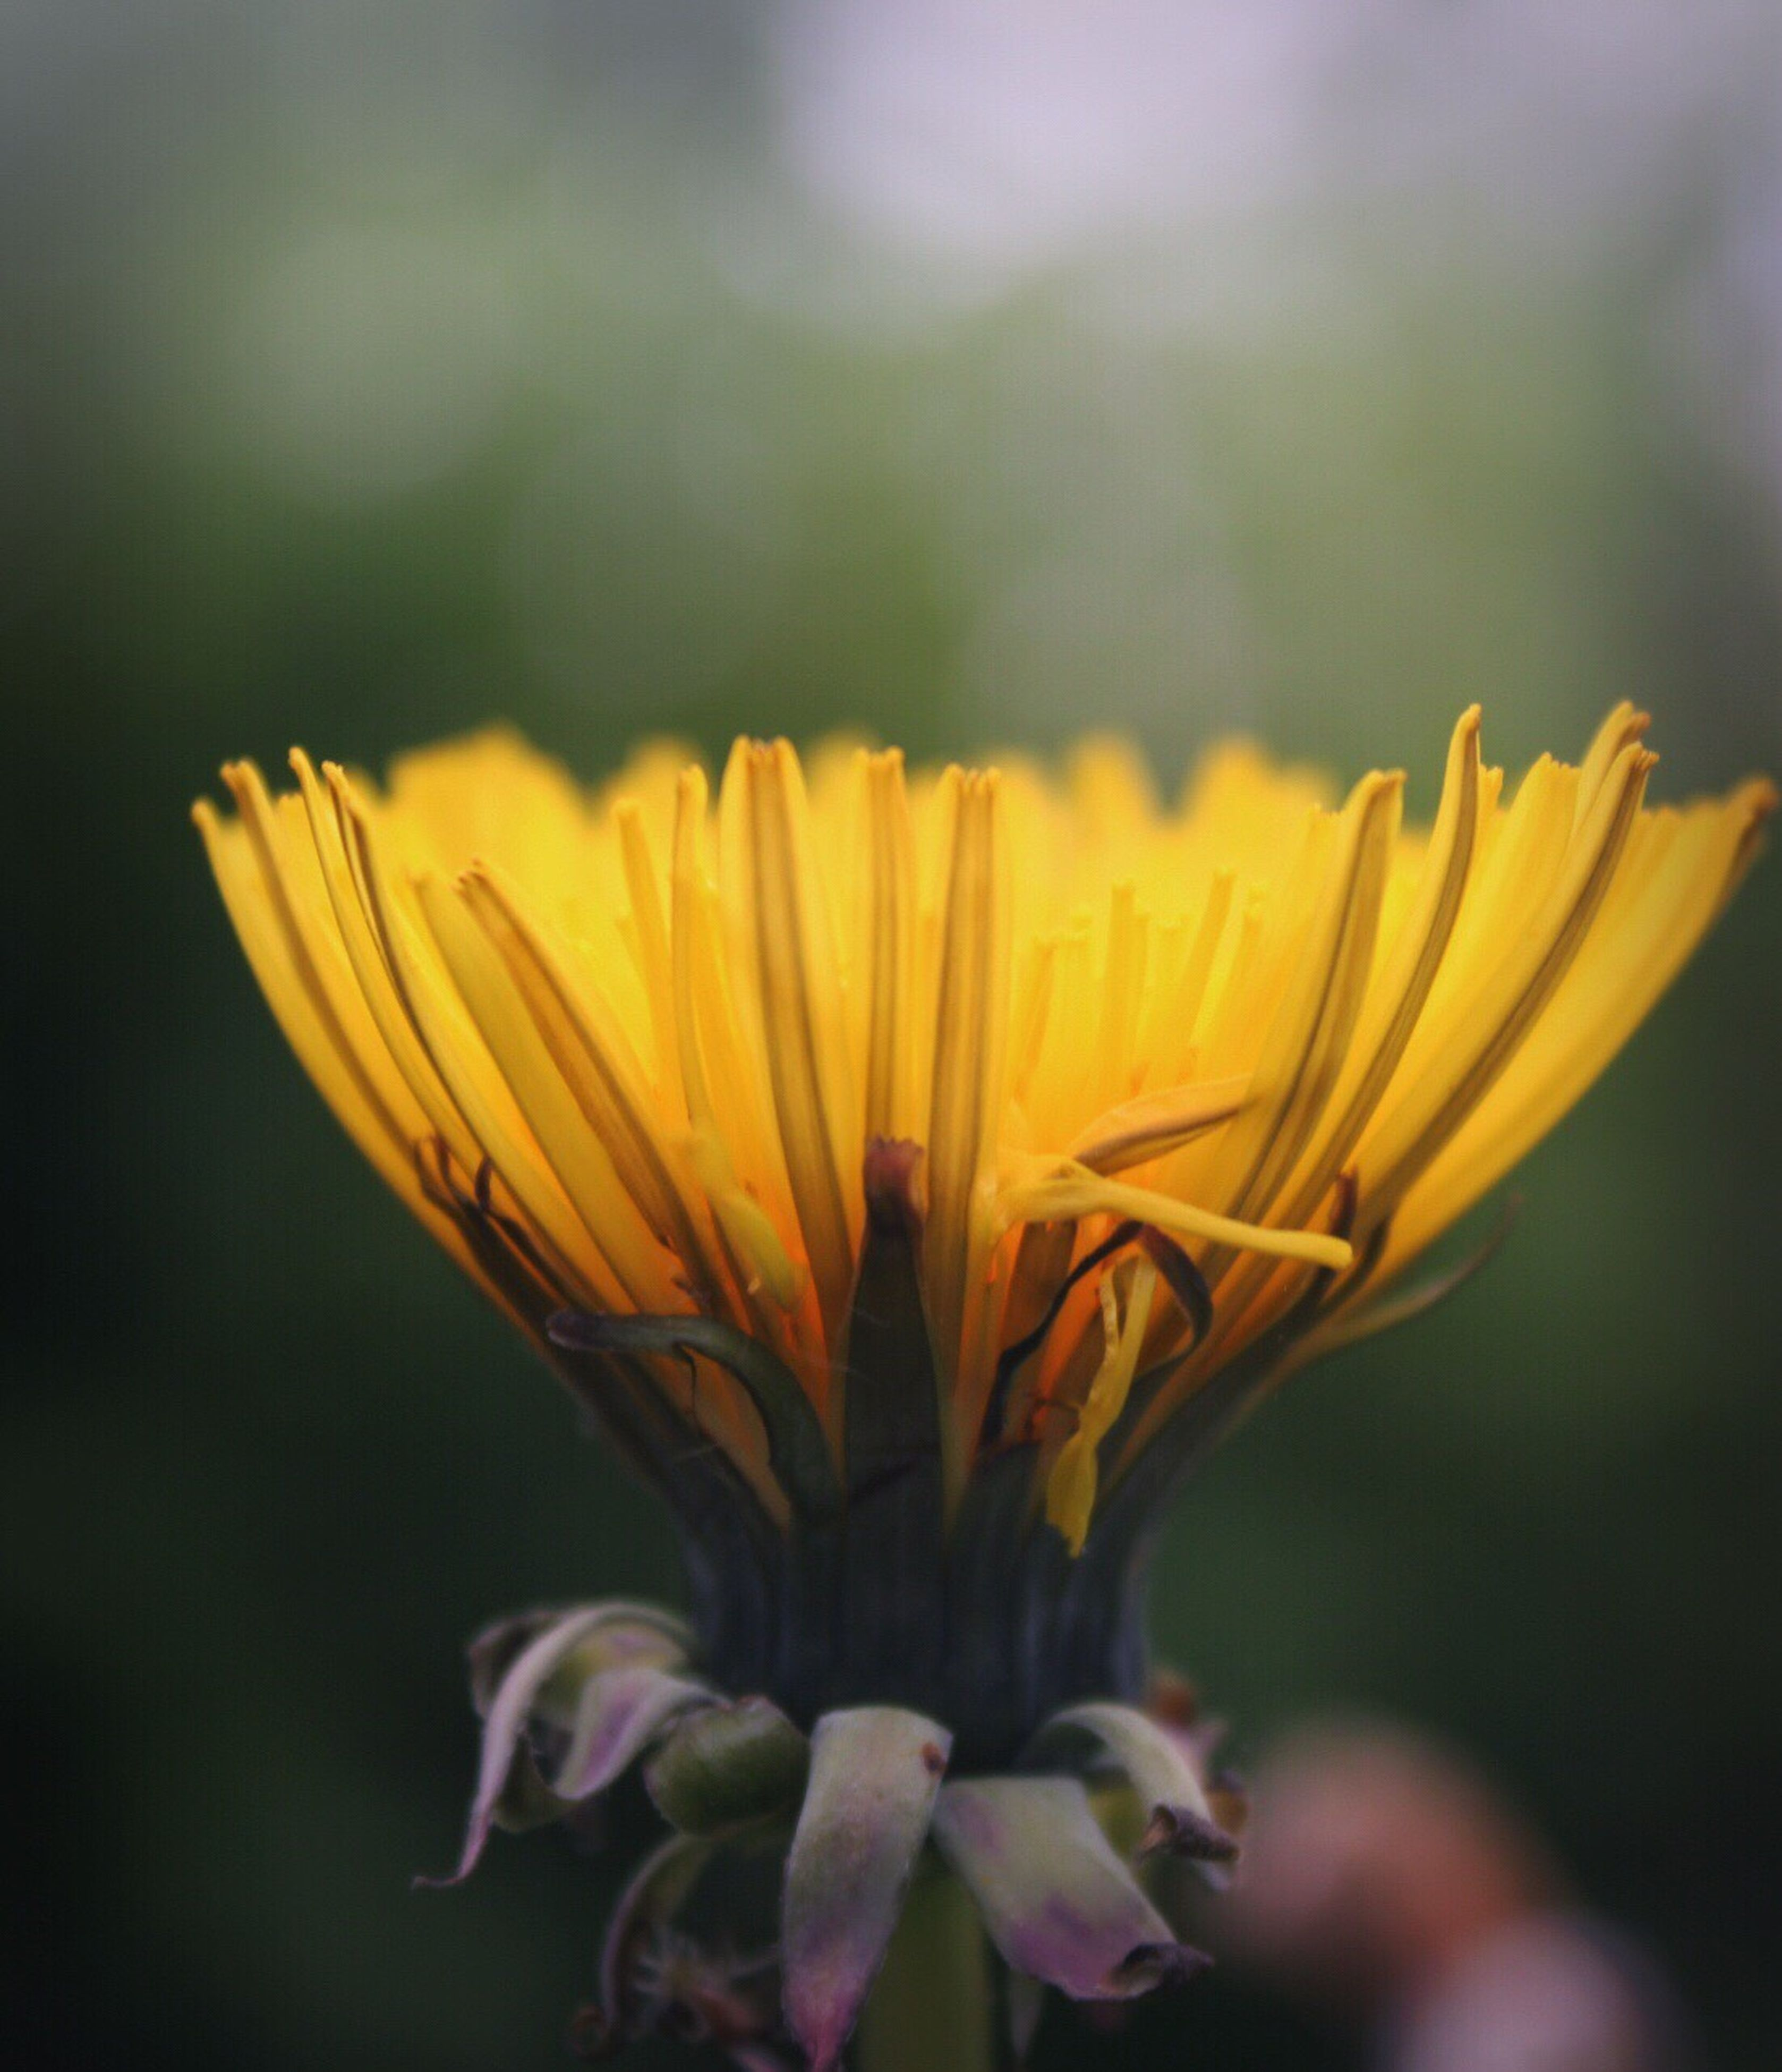 flower, petal, growth, nature, fragility, freshness, yellow, beauty in nature, flower head, plant, blooming, field, outdoors, springtime, close-up, day, no people, sky